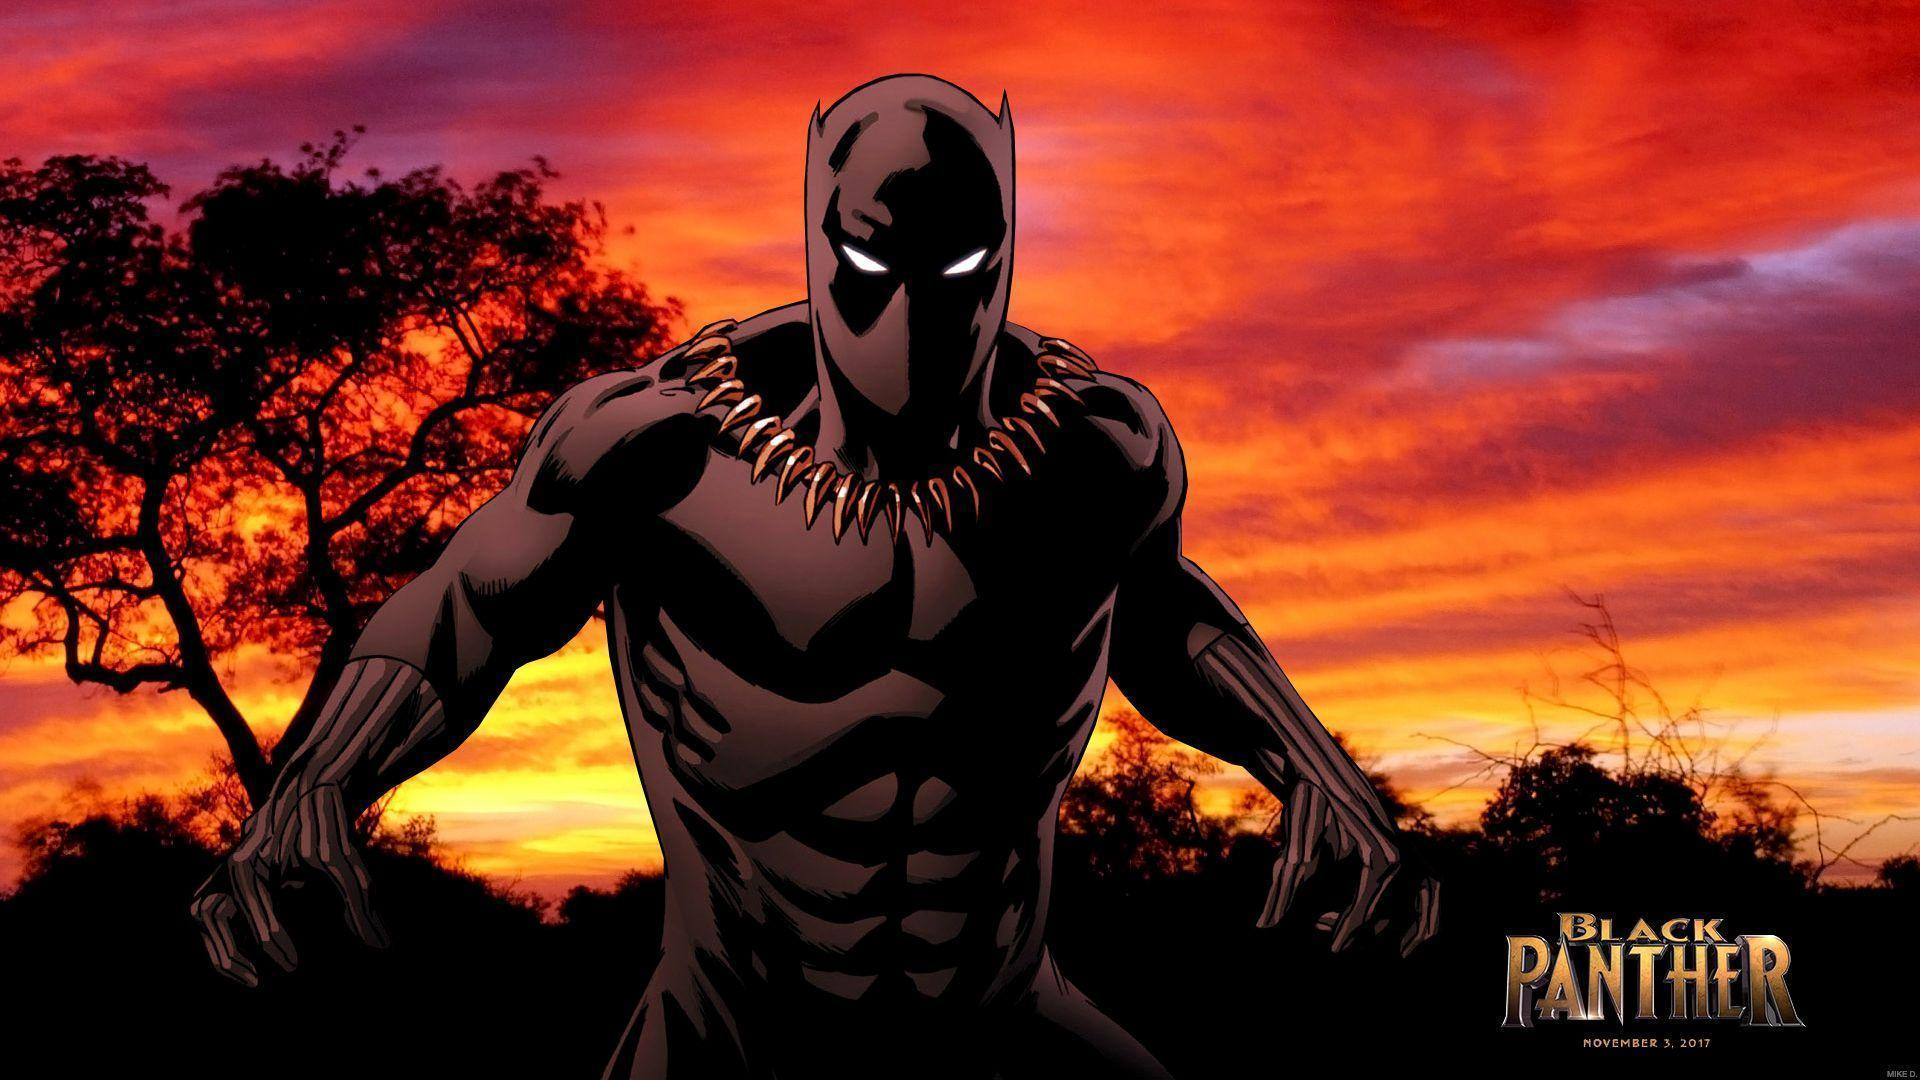 how to download black panther movie, black panther 1080p full movie